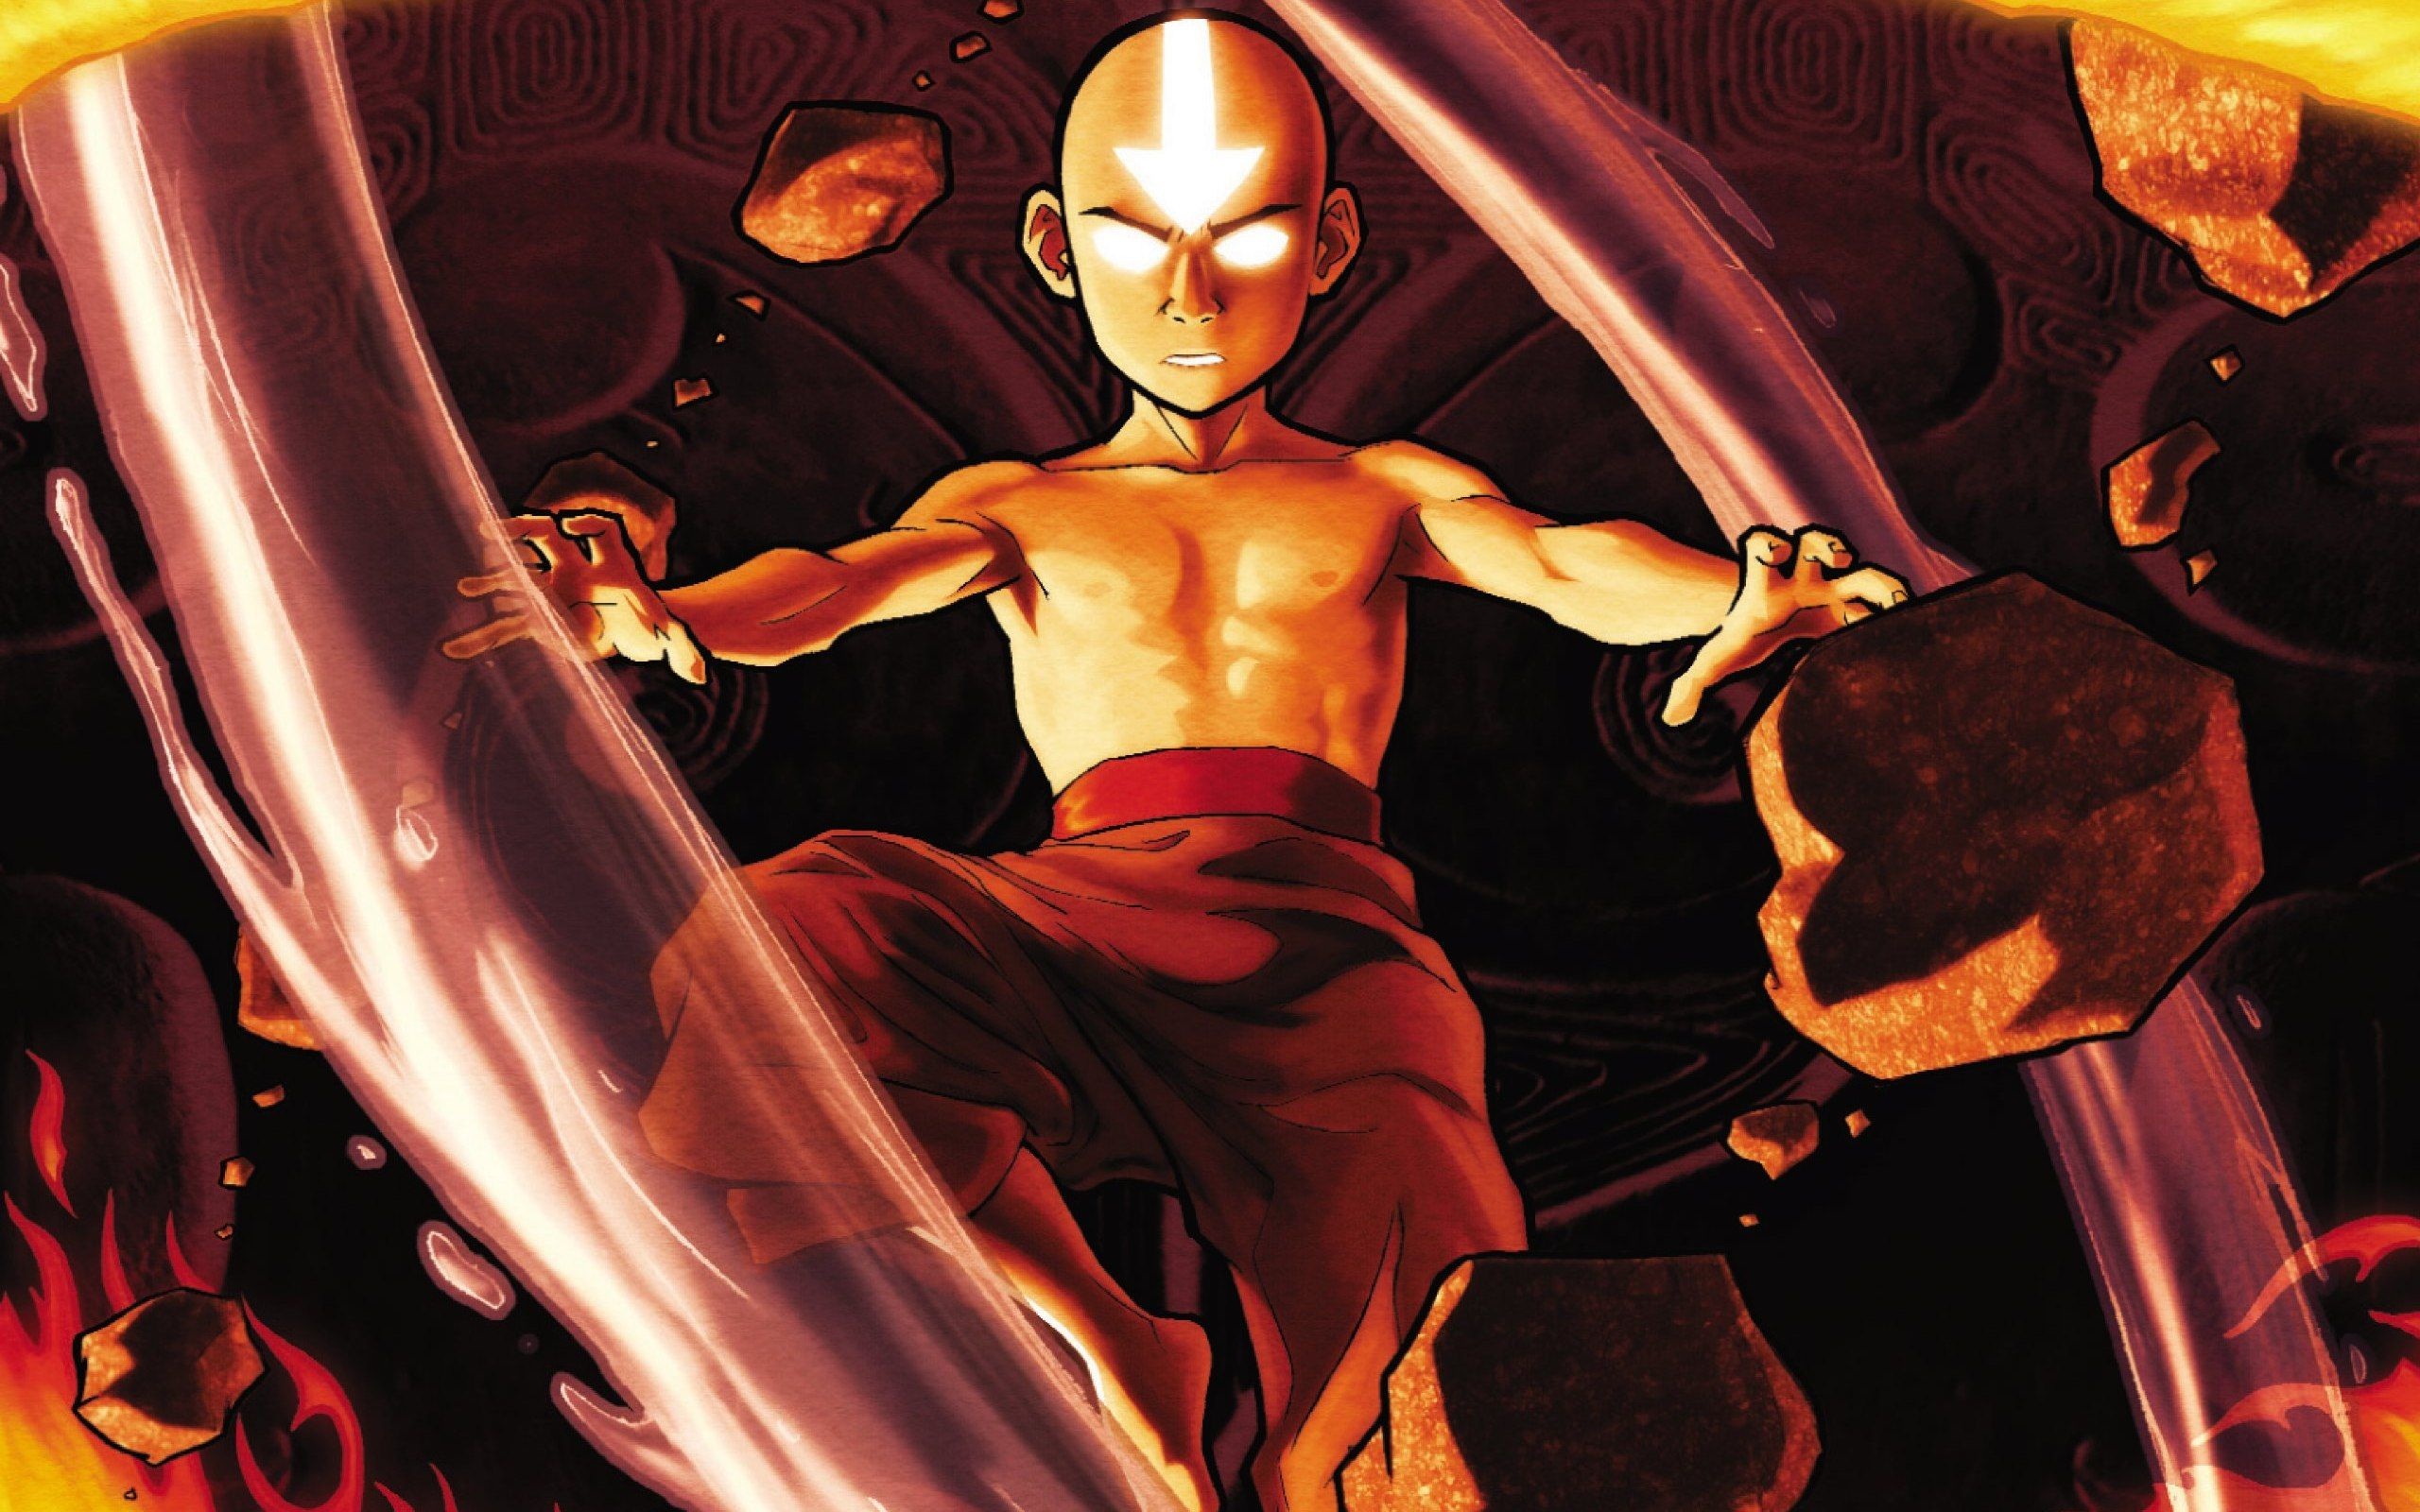 Anime Avatar The Last Airbender Wallpaper